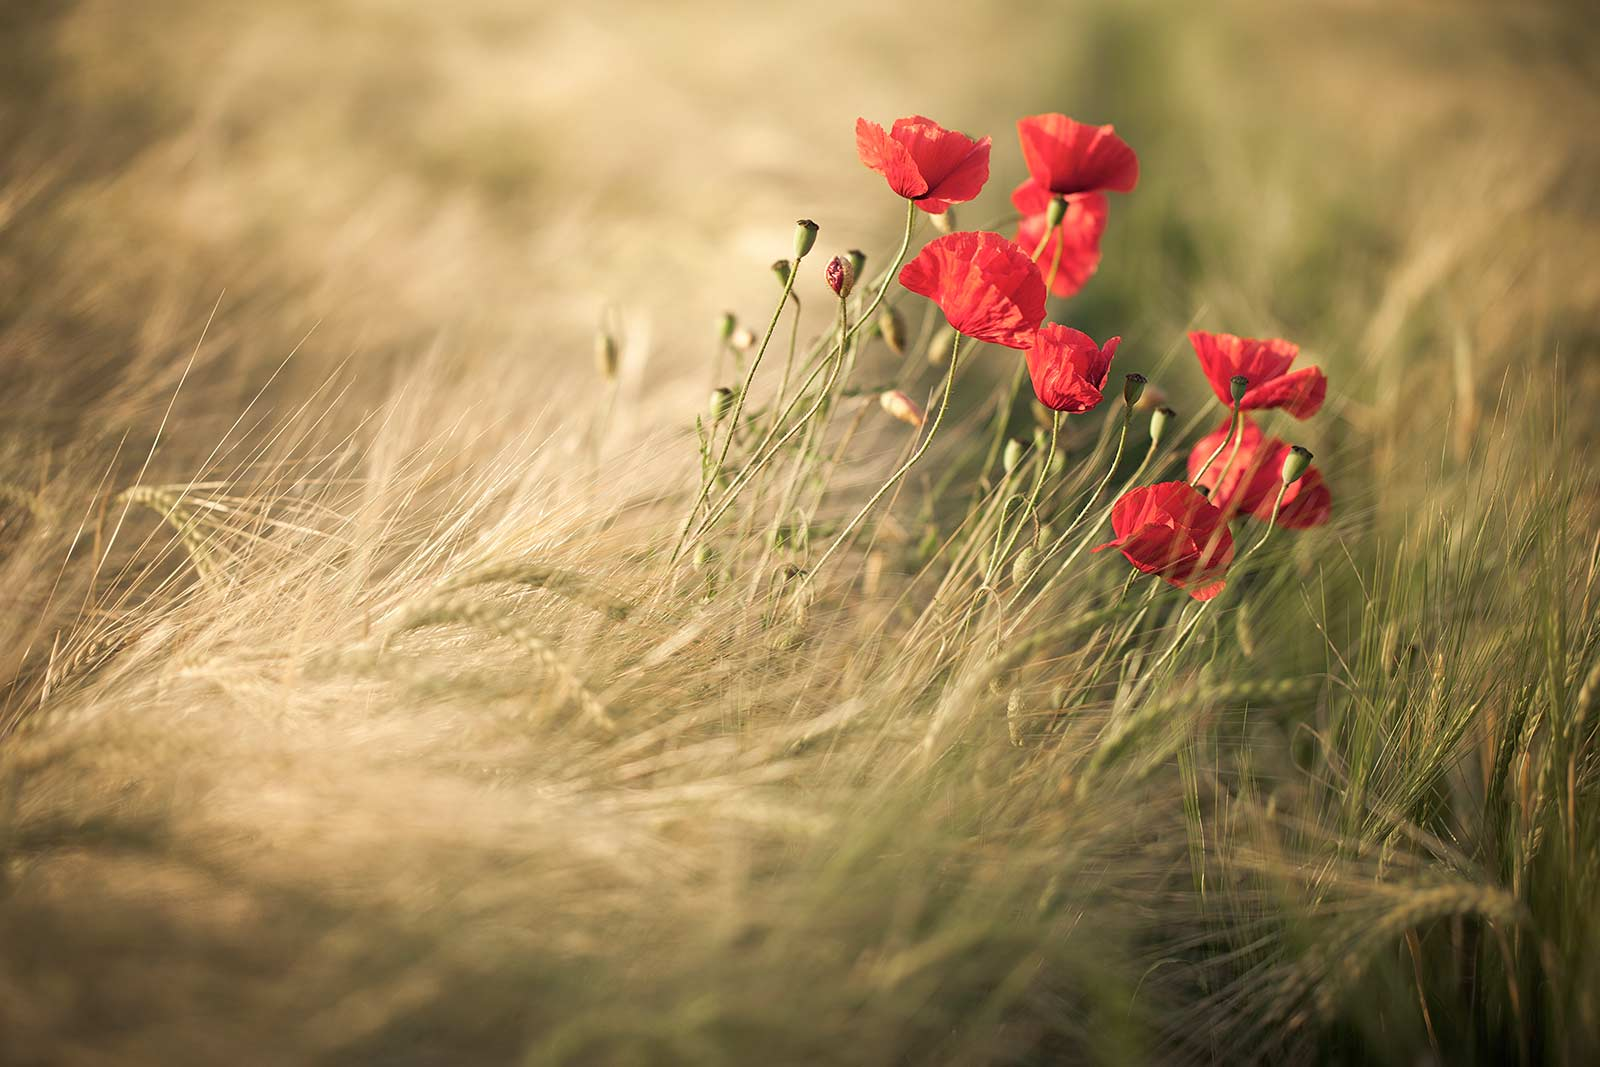 © Justin Minns, Winner in category Social Media, RHS Photographic Competition / RHS Gardening